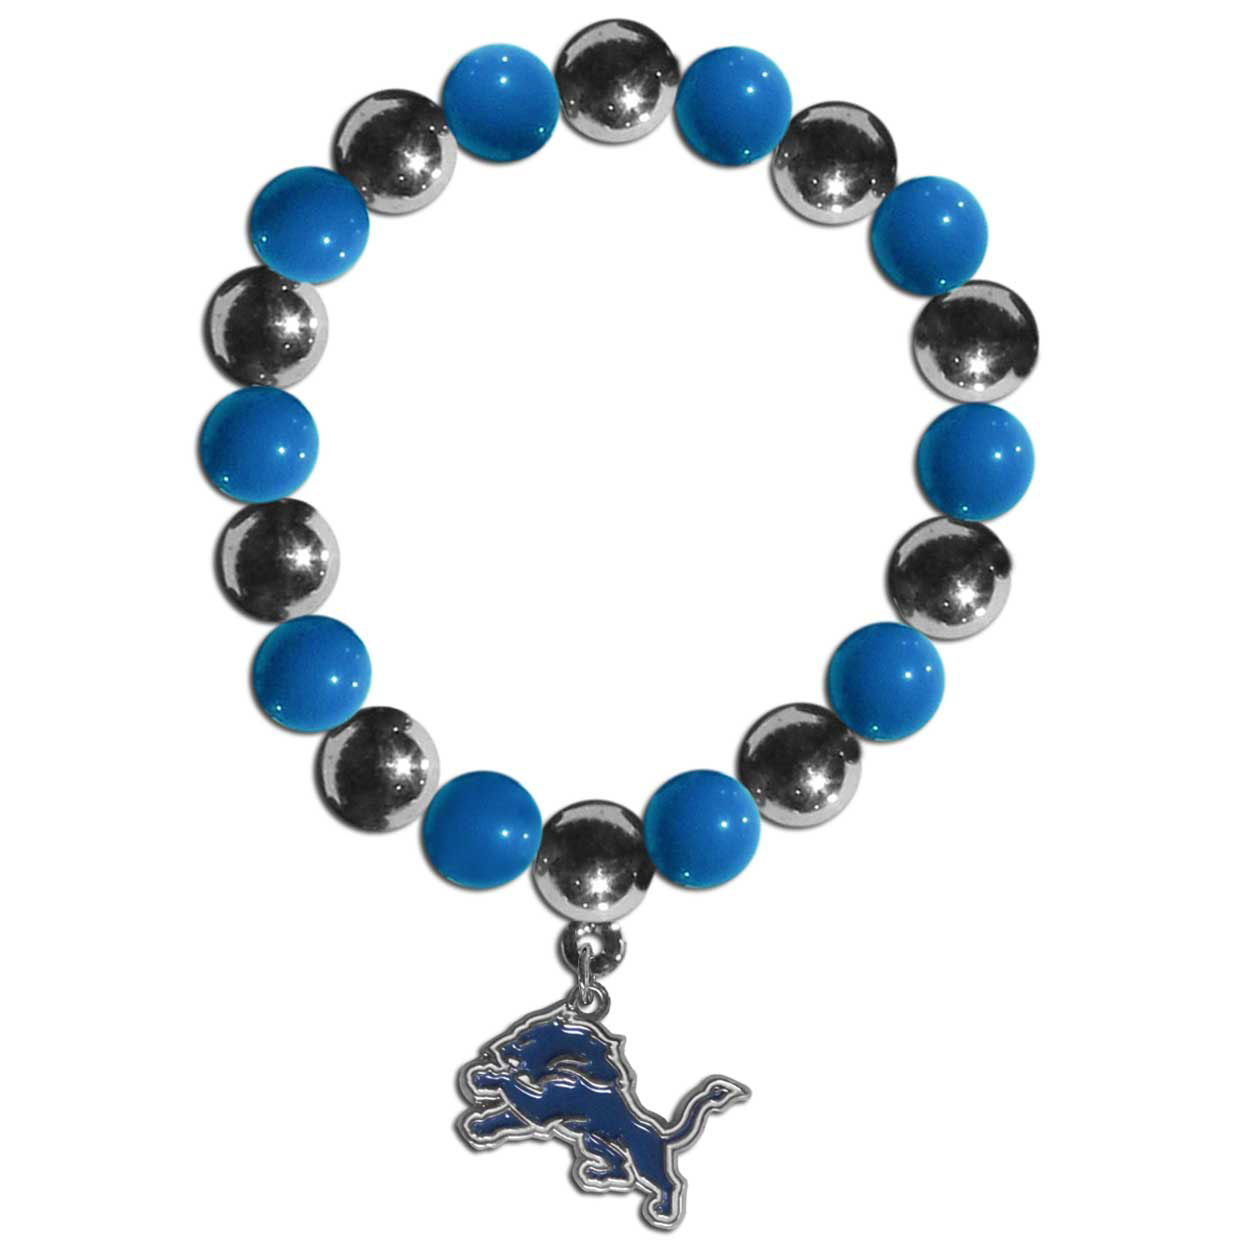 Detroit Lions Chrome Bead Bracelet - Flash your Detroit Lions spirit with this bright stretch bracelet. This new bracelet features alternating charm & team beads on stretch cord with a nickel-free enameled chrome team charm. This bracelet adds the perfect pop of color to your game day accessories.